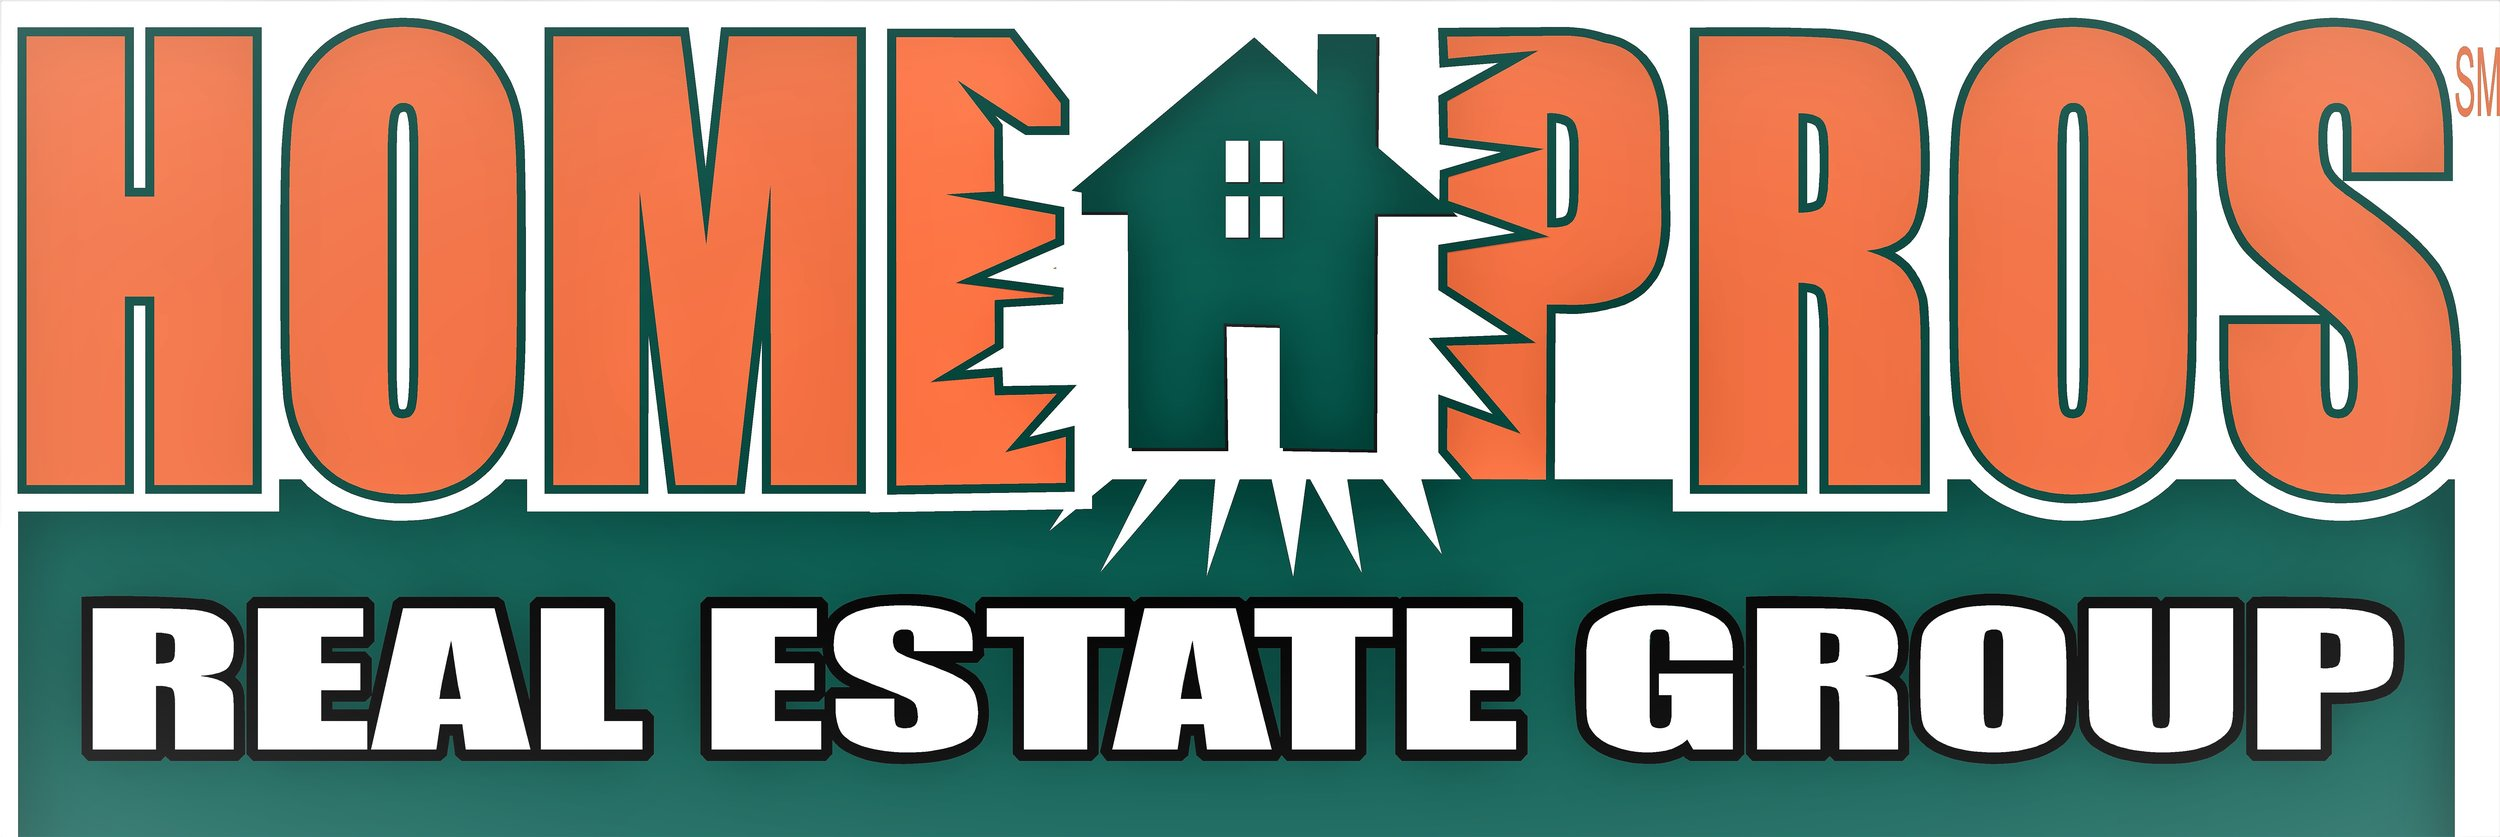 HOME PROS REAL ESTATE LOGO.jpg